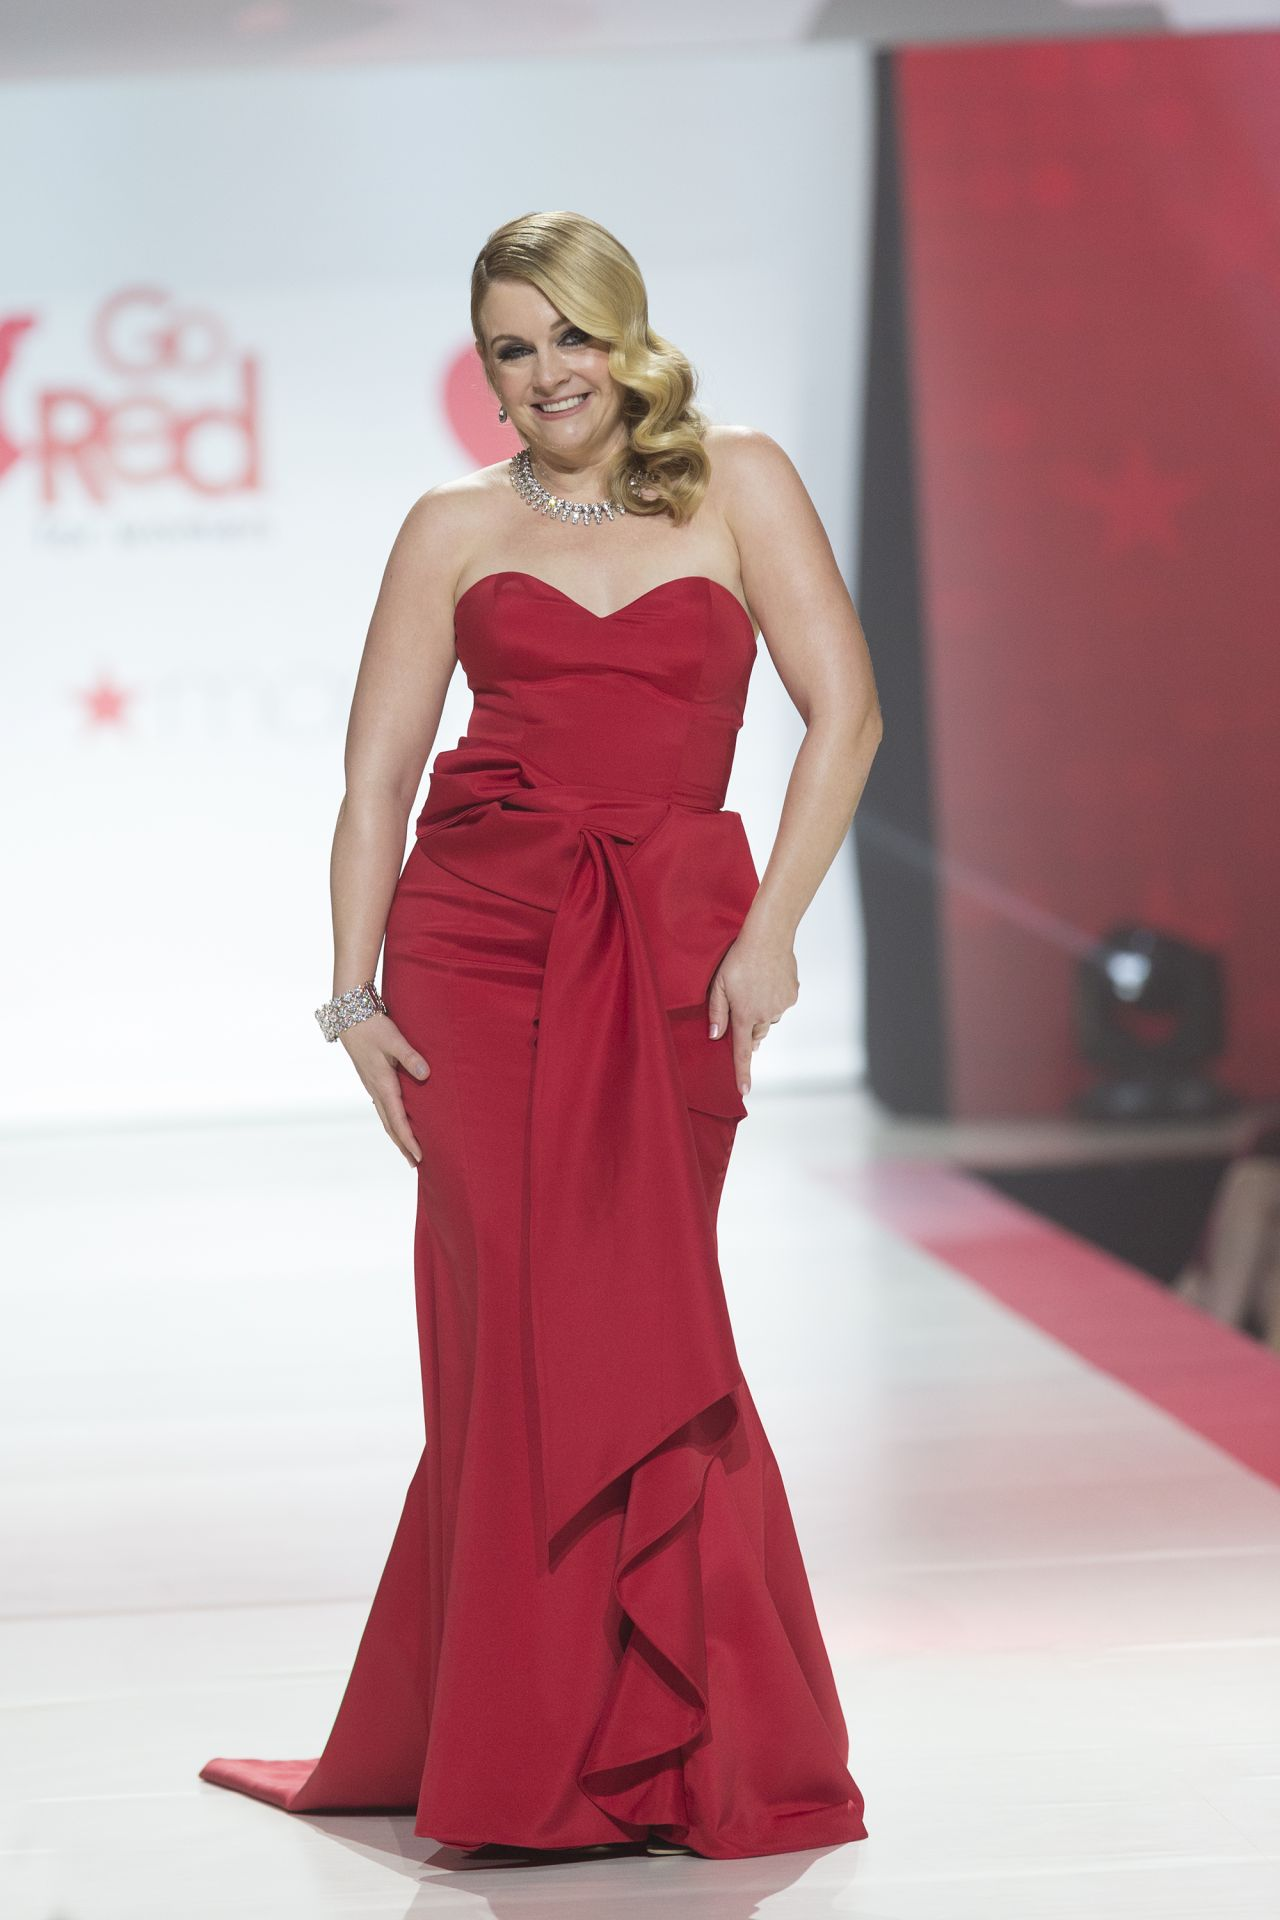 Go Red For Women Red Dress Collection 2018 Fashion Show